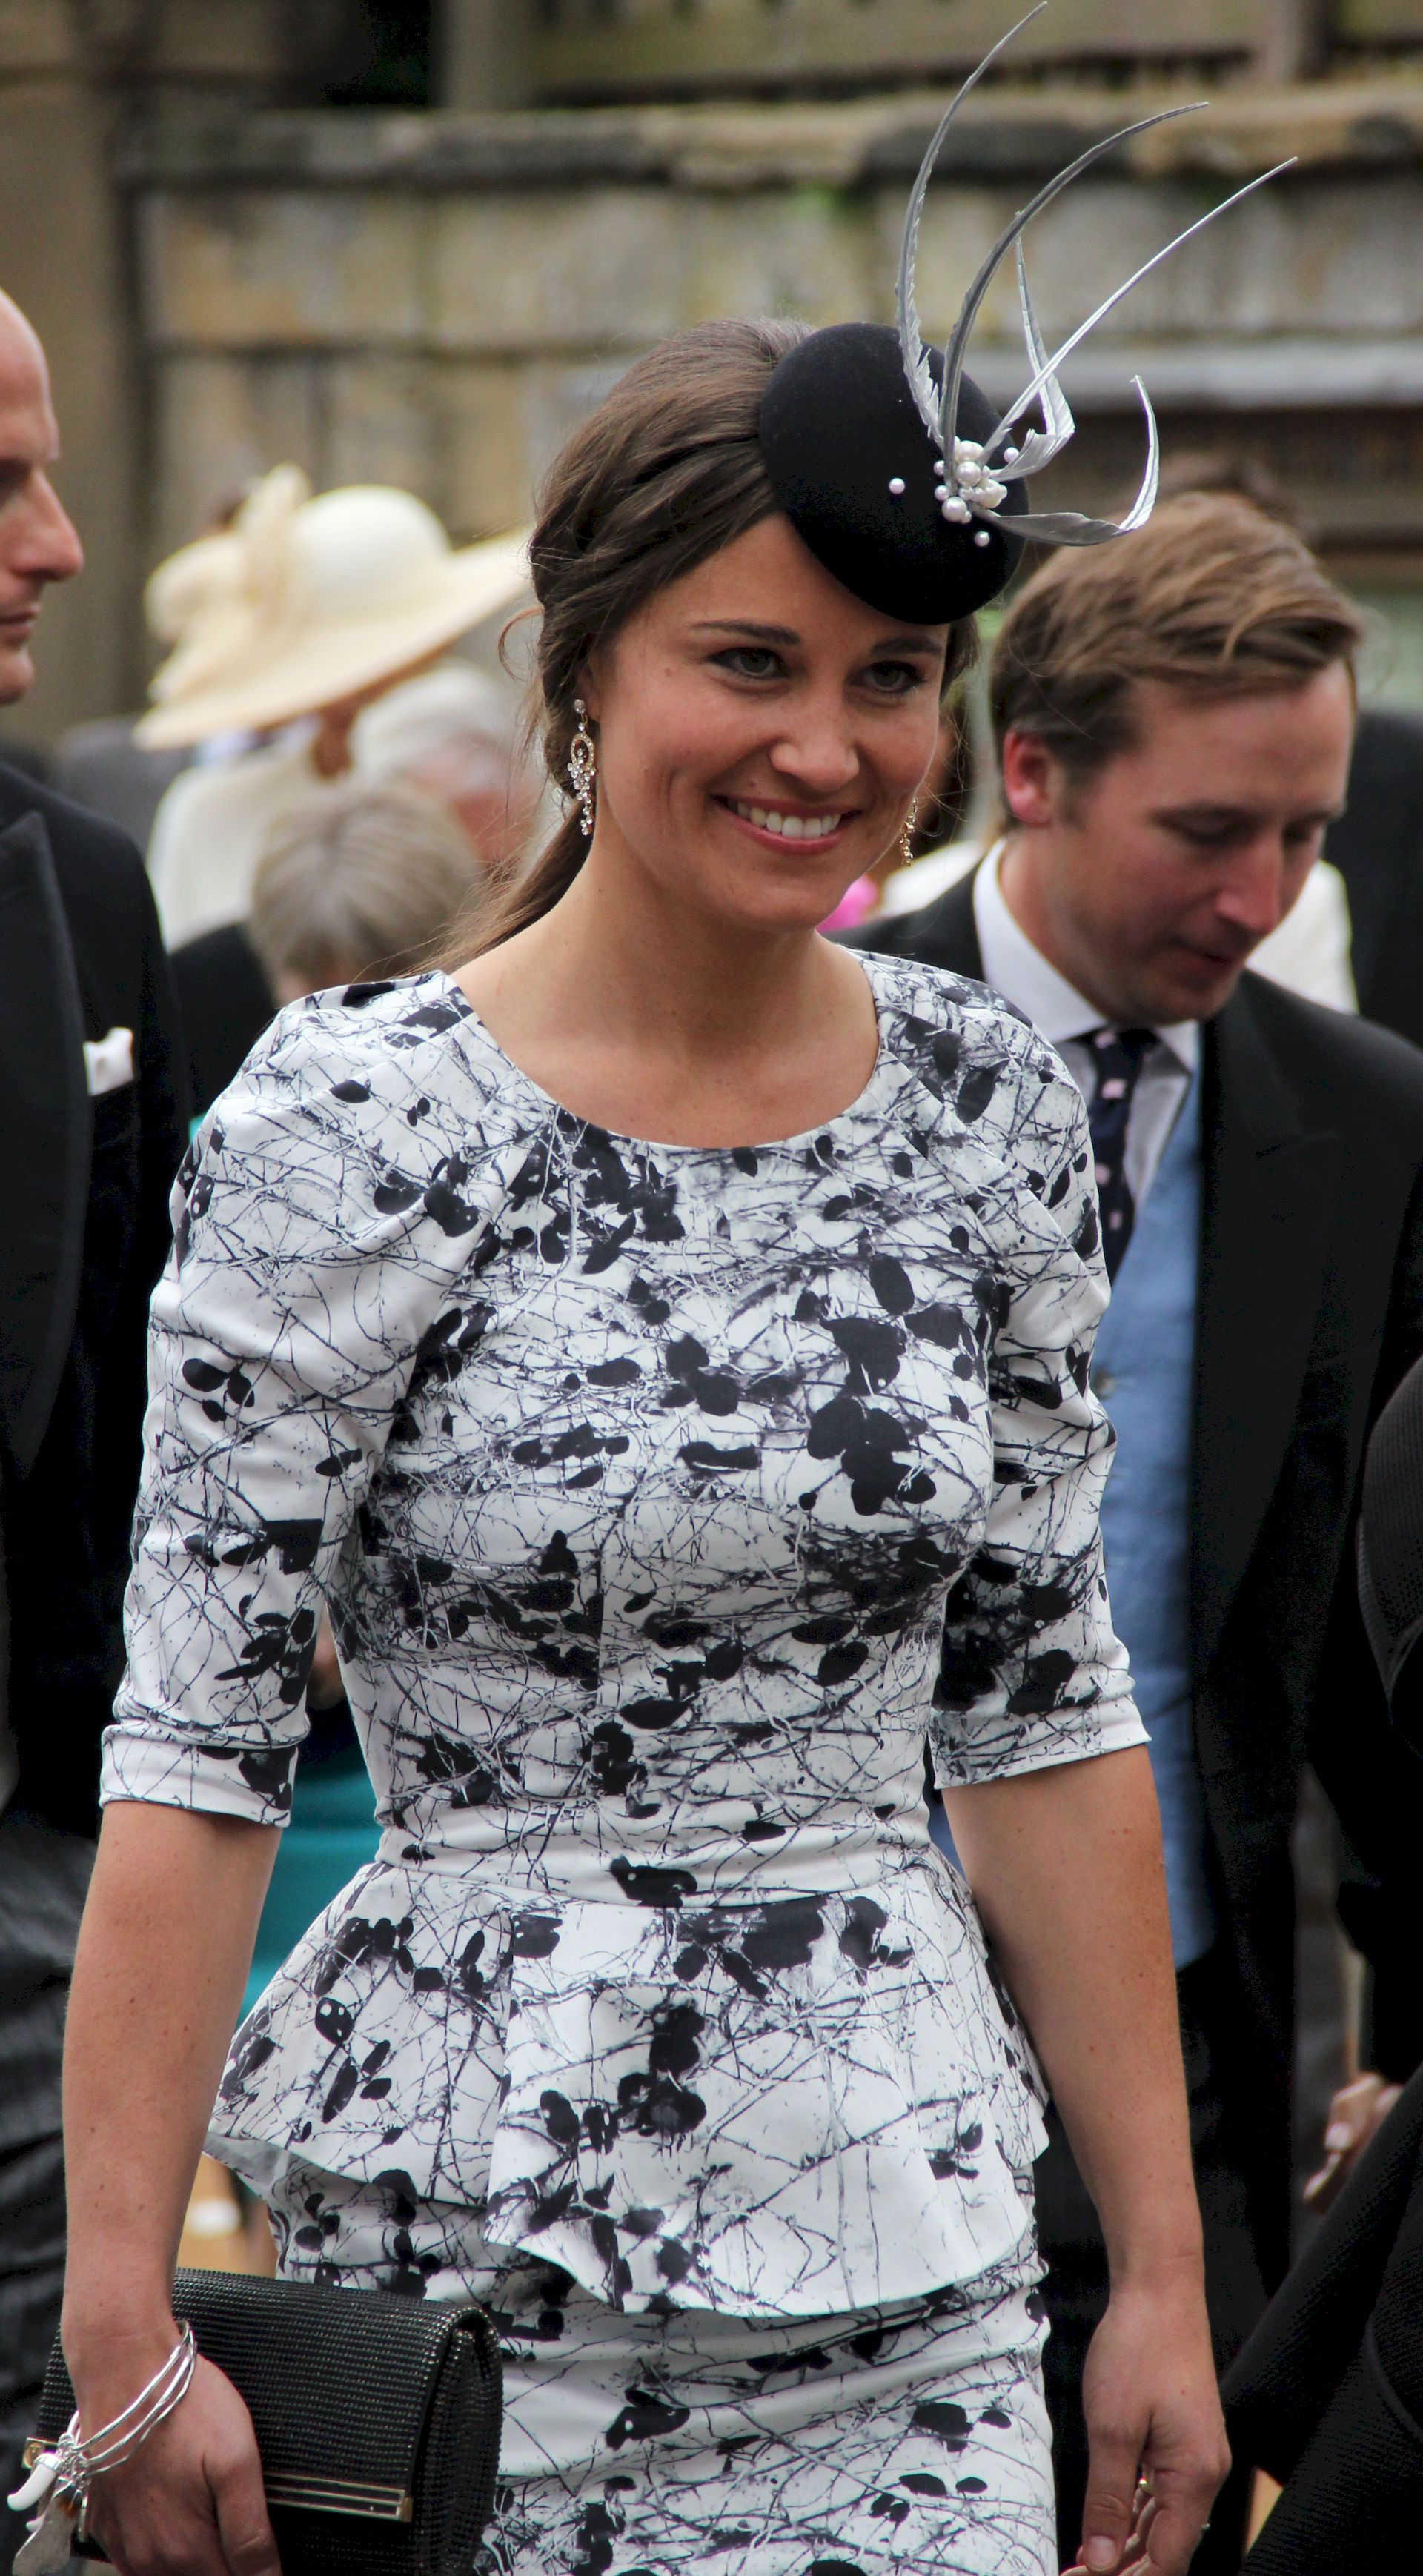 Photo of Pippa Middleton: English socialite, author, columnist, and the younger sister of Catherine, Duchess of Cambridge